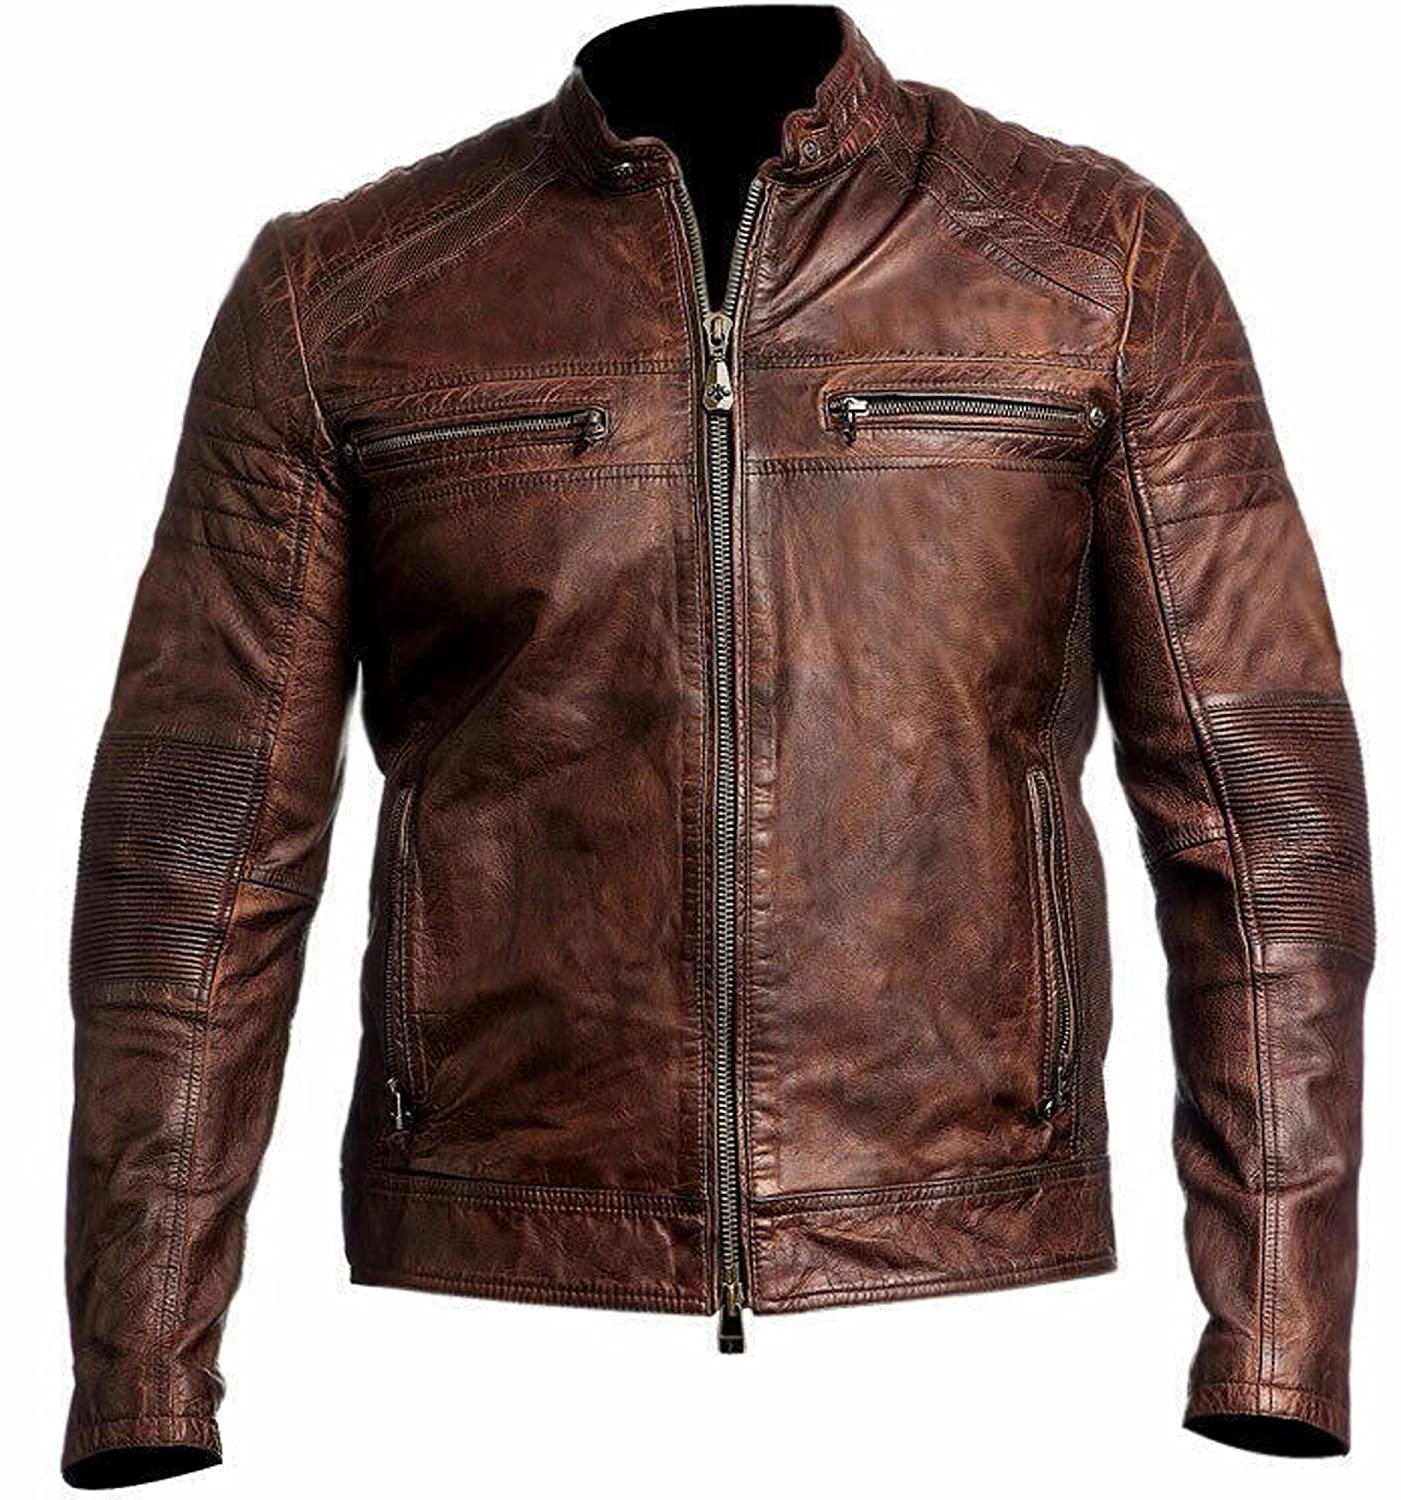 Mens Biker Vintage Motorcycle Cafe Racer Distressed Brown Leather Jacket